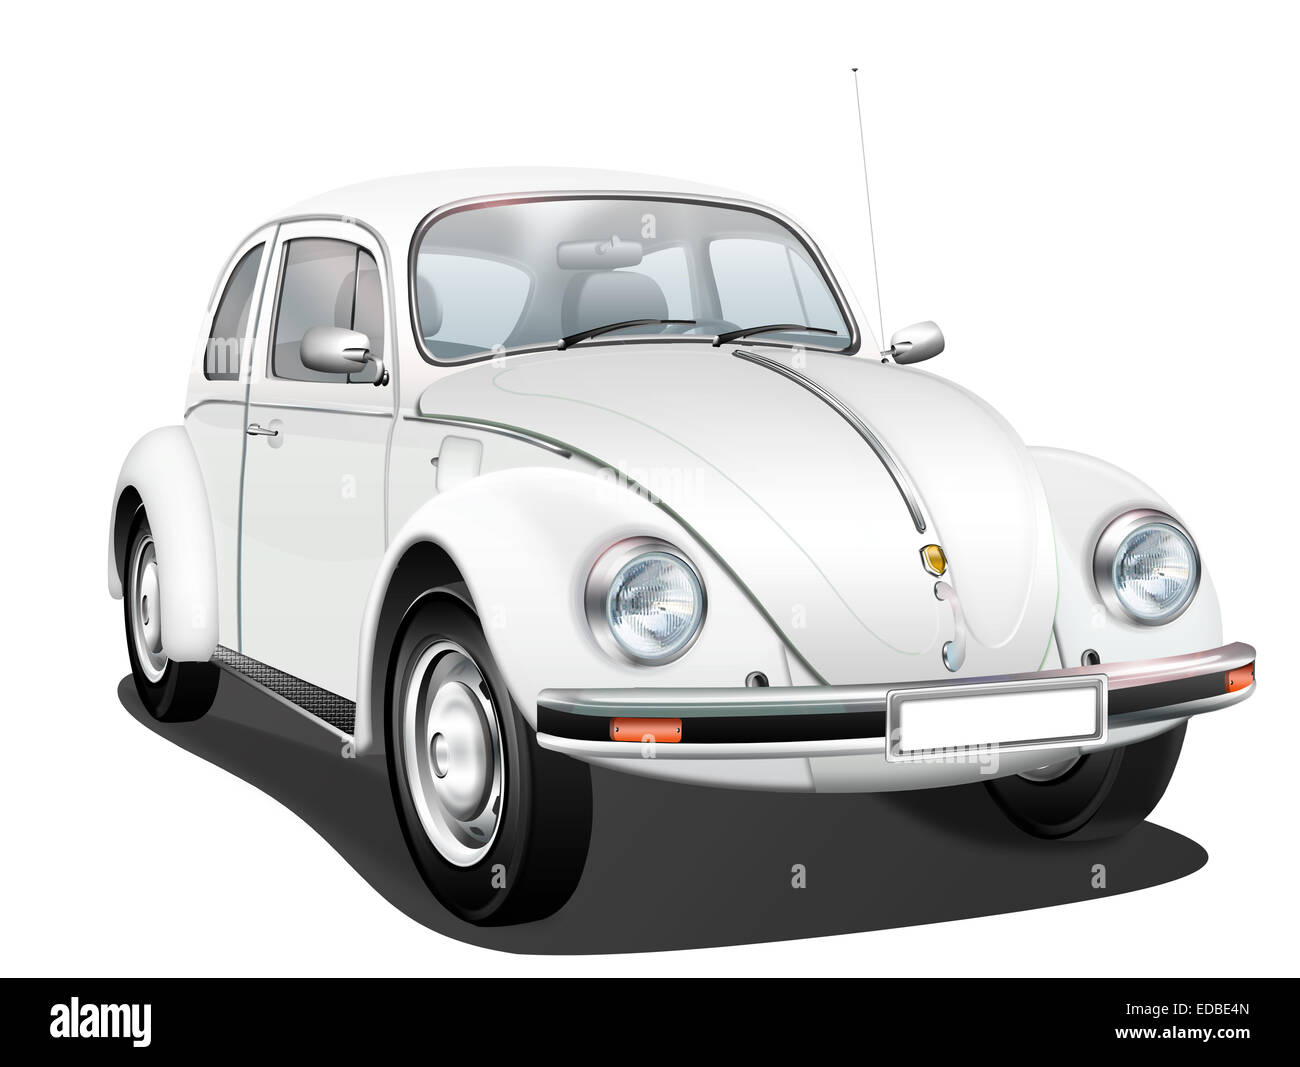 VW Beetle, German vintage, illustration - Stock Image